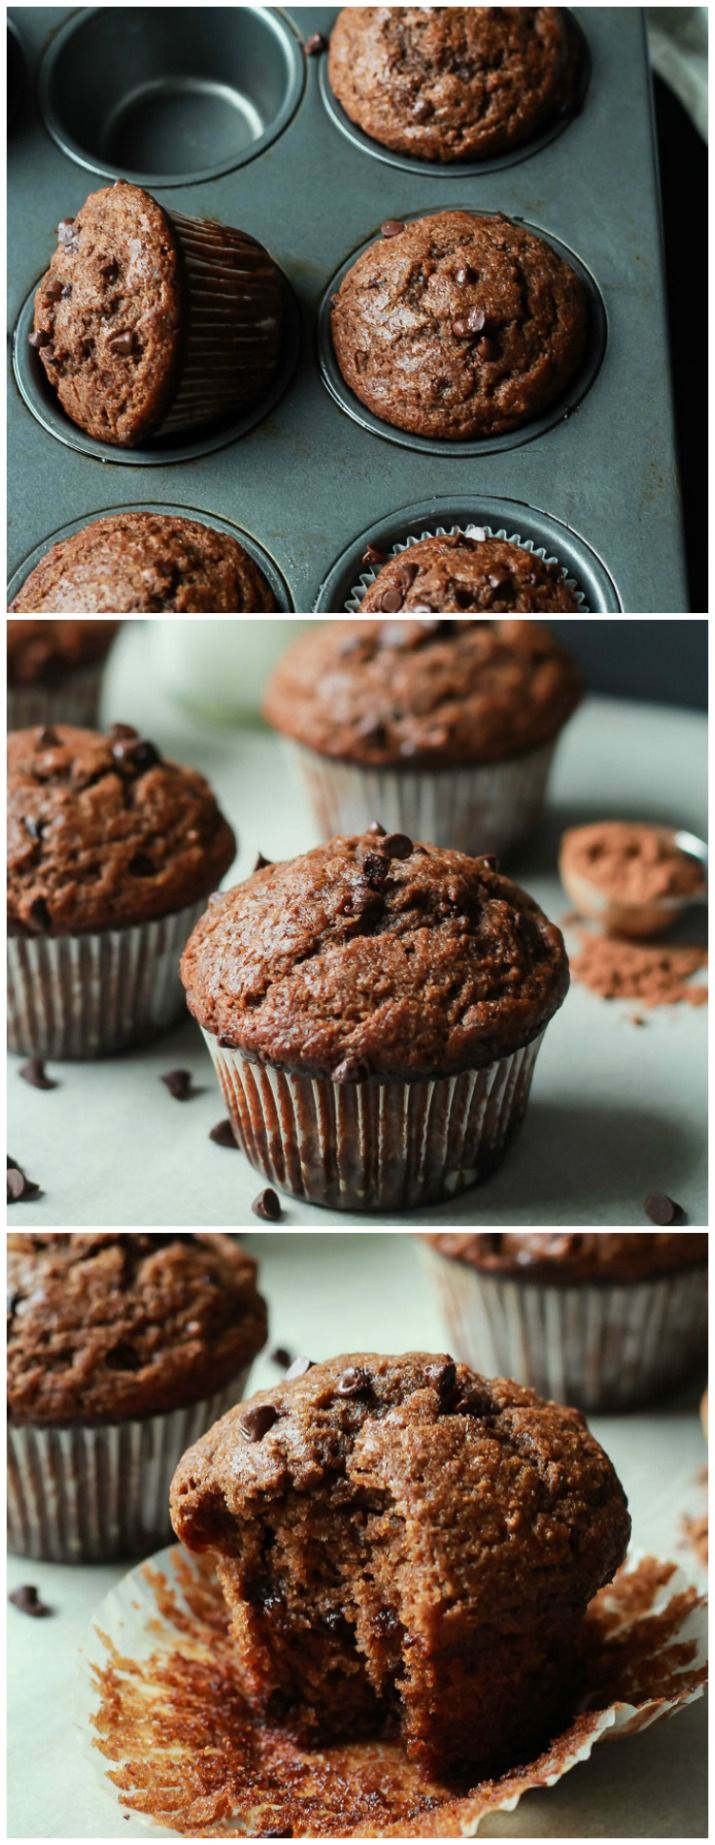 Skinny Double Chocolate Banana Muffins by joyfulhealtheats: The muffins of your dreams. No Sugar, crazy moist, loads of chocolate flavor with great banana taste.  #Muffins #Chocolate #Banana #Healthy